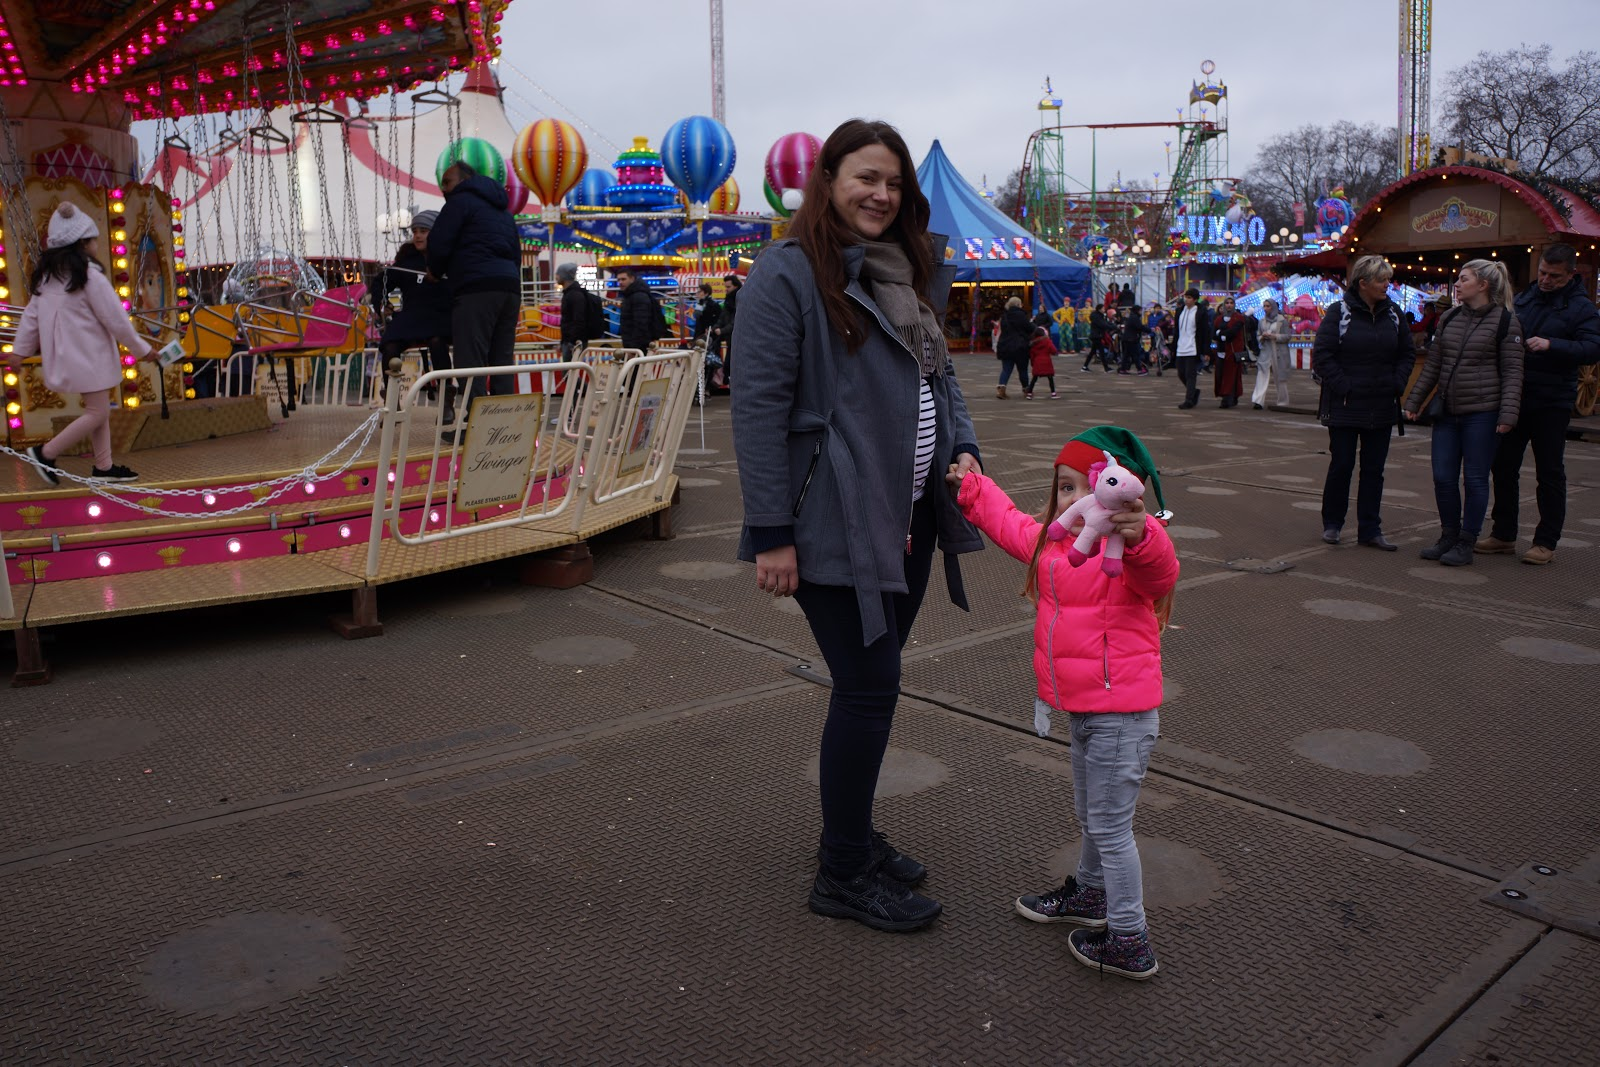 mum and daughter at london winter wonderland